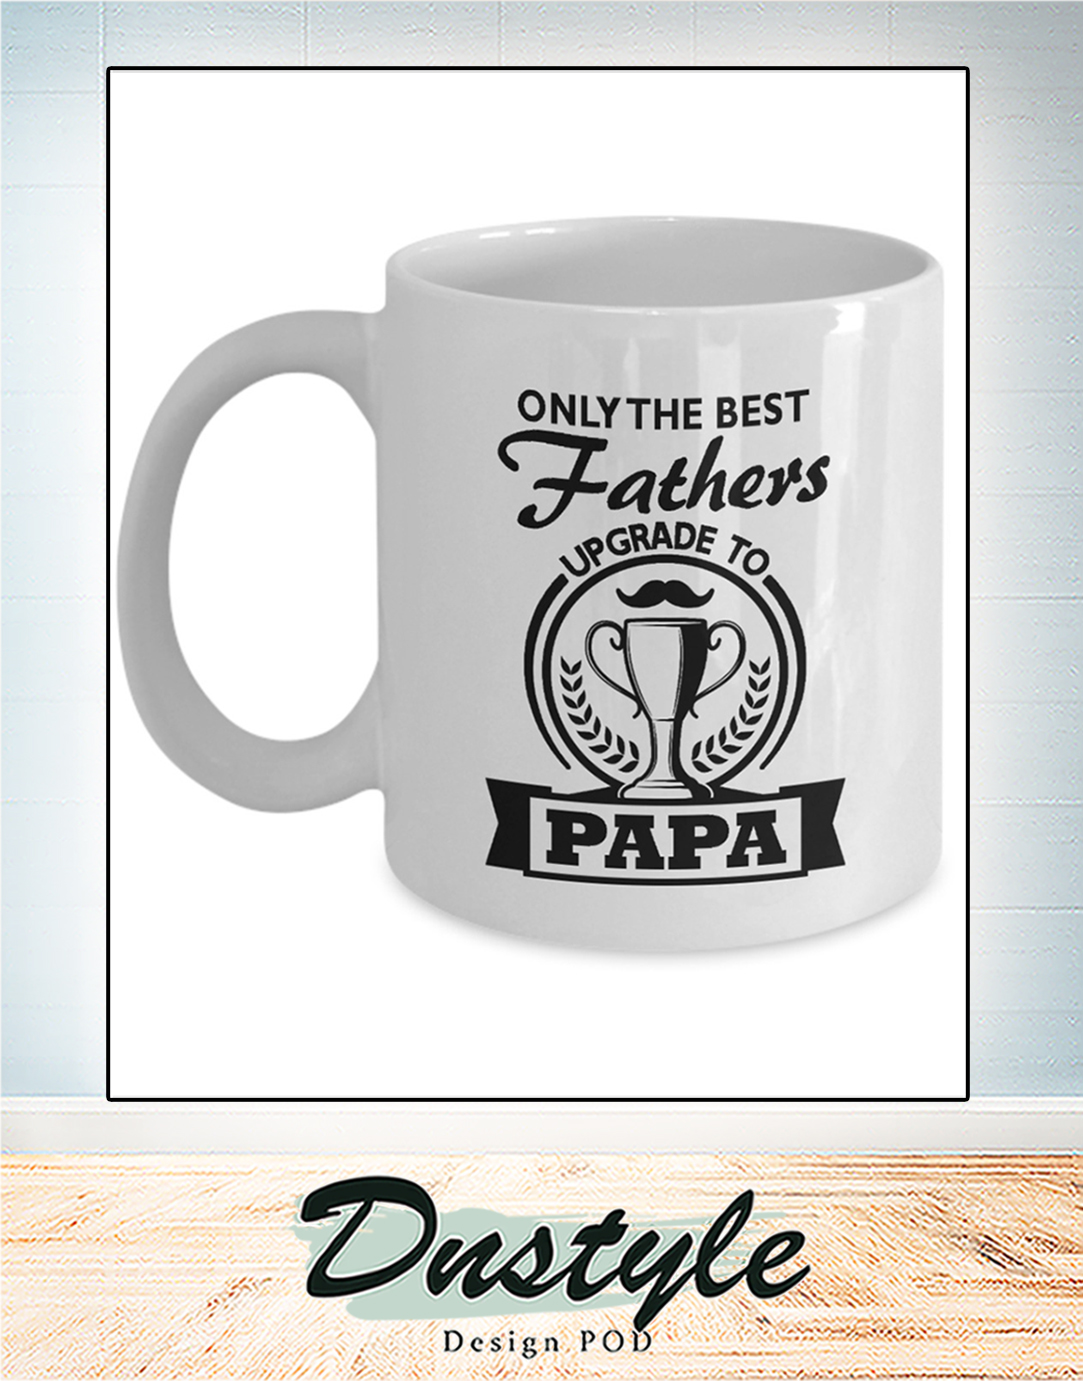 Only the best fathers upgrade to papa mug 2